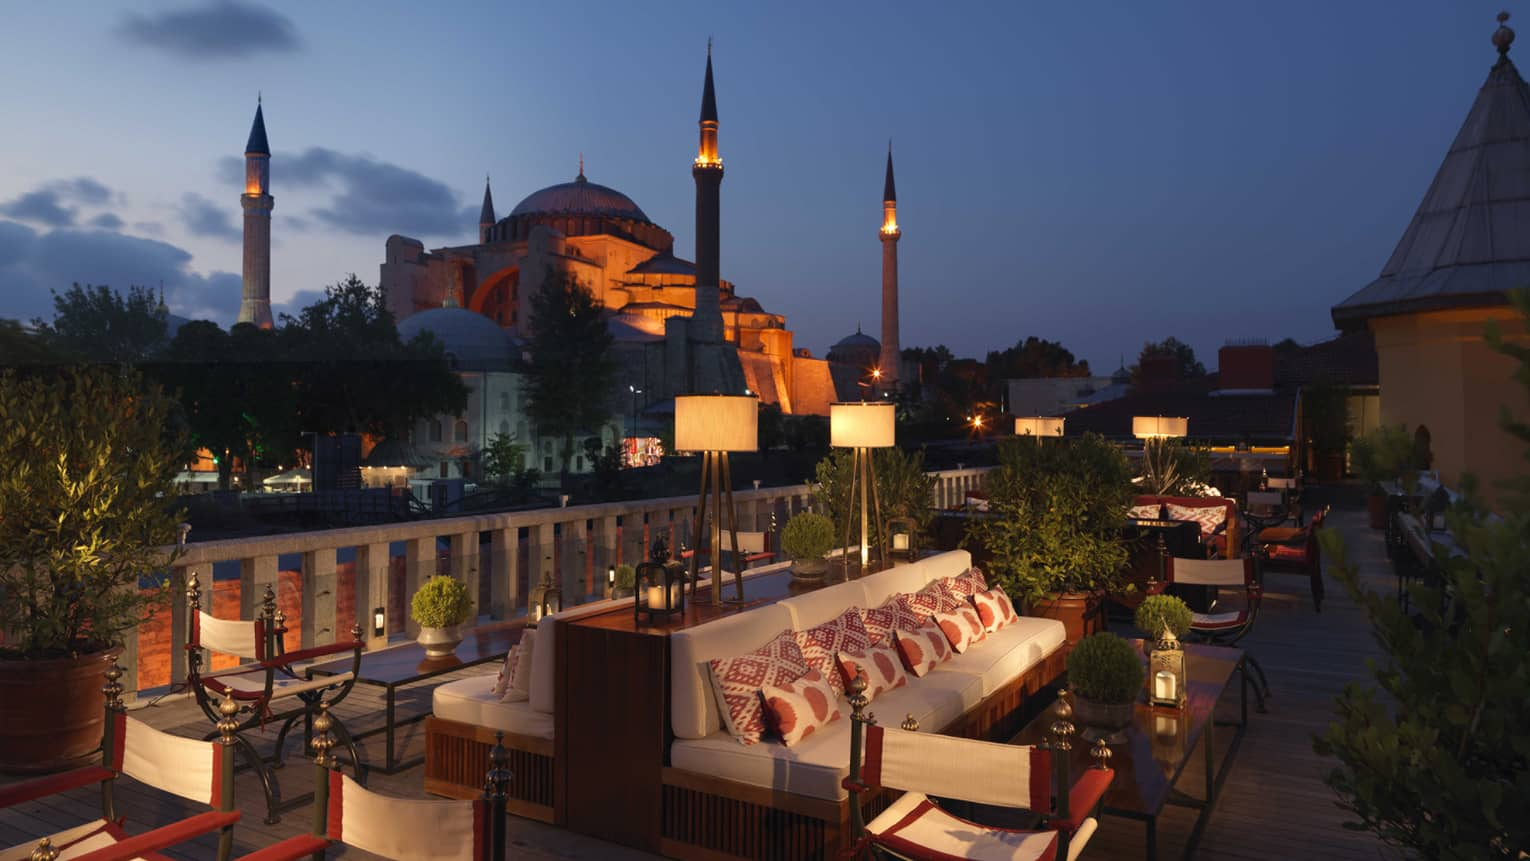 A'YA Rooftop Lounge benches, tables at night with mosque in background